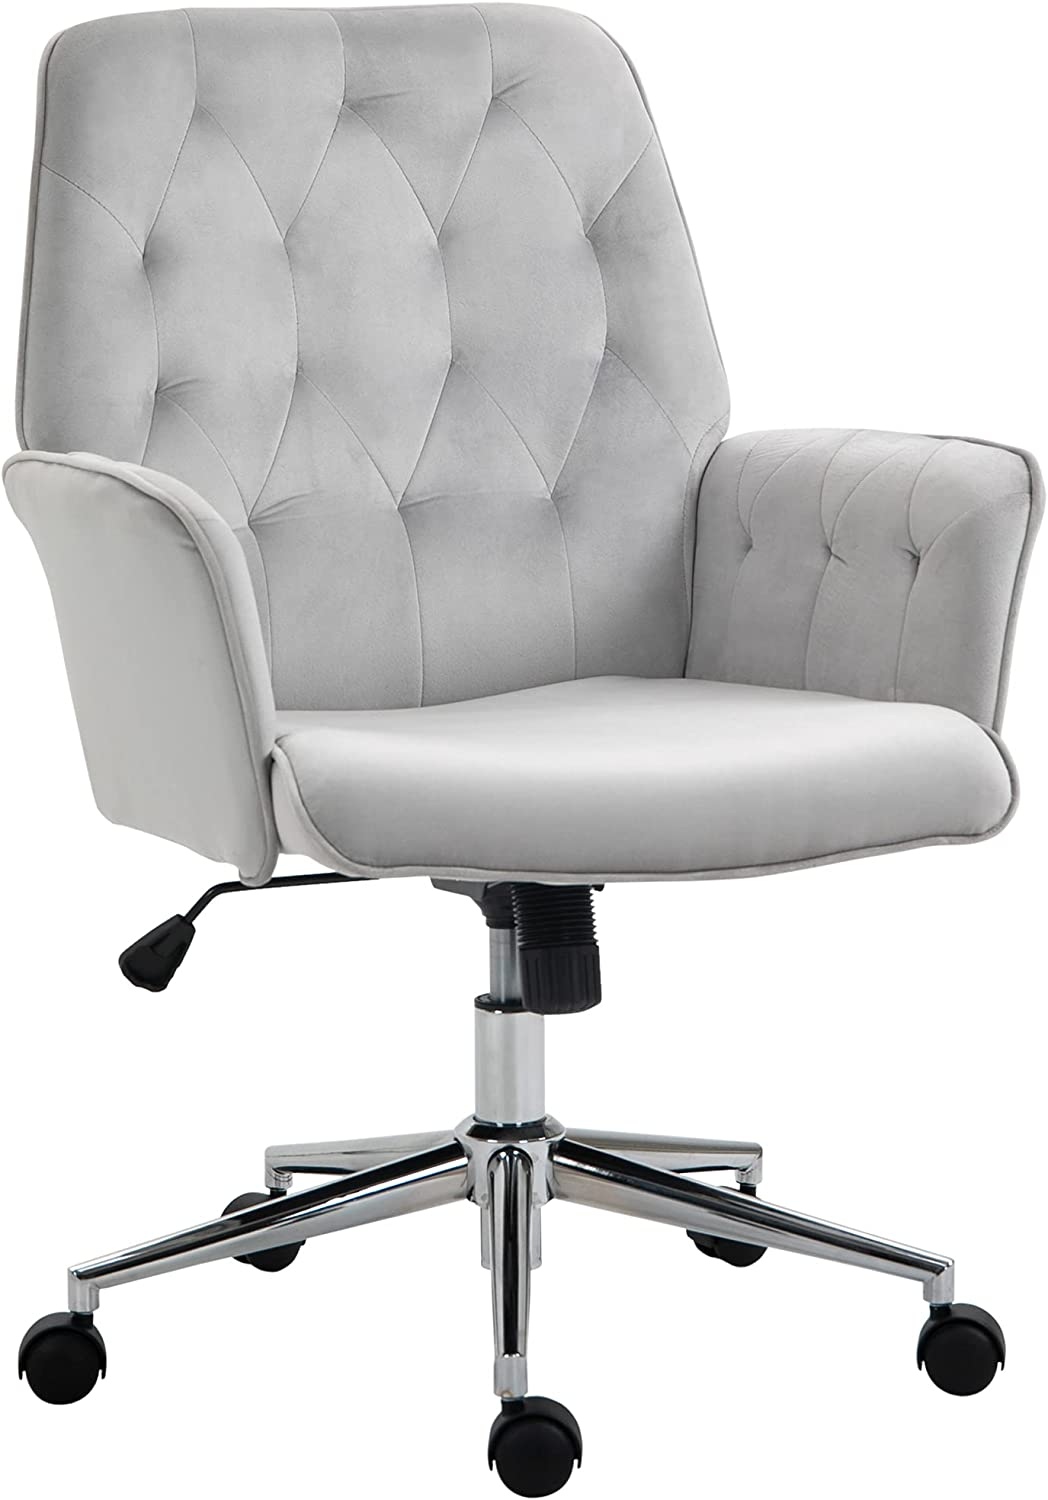 Vinsetto Modern Mid-Back Tufted Velvet Fabric Home Office Desk Chair with Arms, Swivel Adjustable Task Chair, Upholstery Accent Chair with Soft Seat, Metal Base - Light Grey